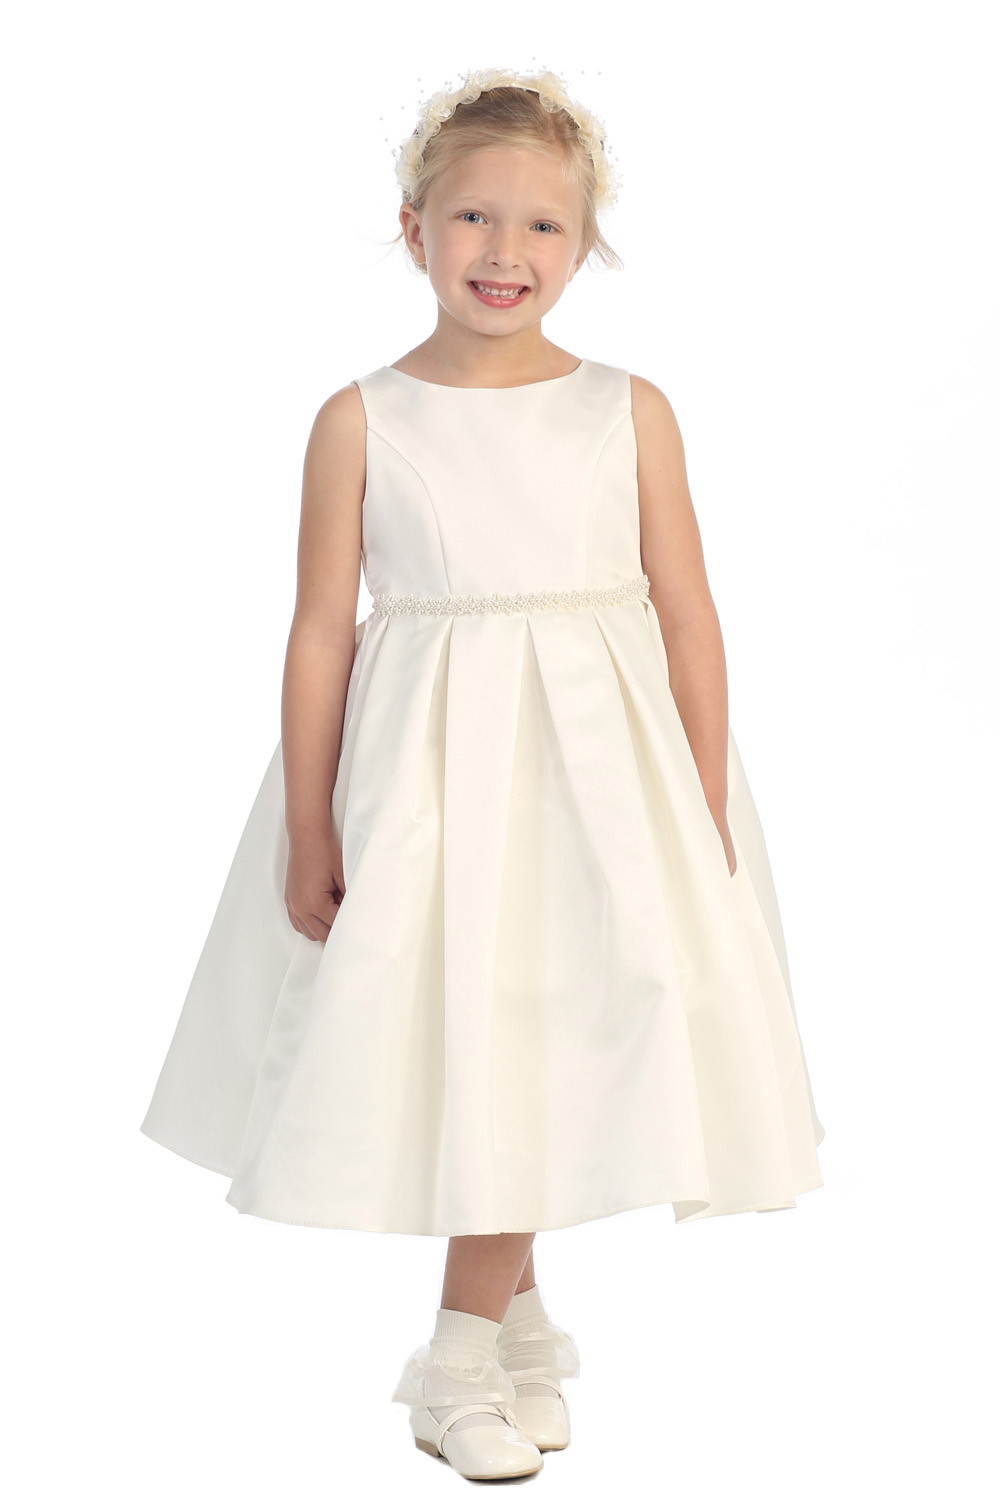 Flower Girls Dresses For Wedding Gowns A-line Girl Birthday Party Dress Fashion Girls Pageant Dresses Mother Daughter Dresses free shipping flower girls dresses for wedding gowns a line girl birthday party dress baby dress tulle mother daughter dresses